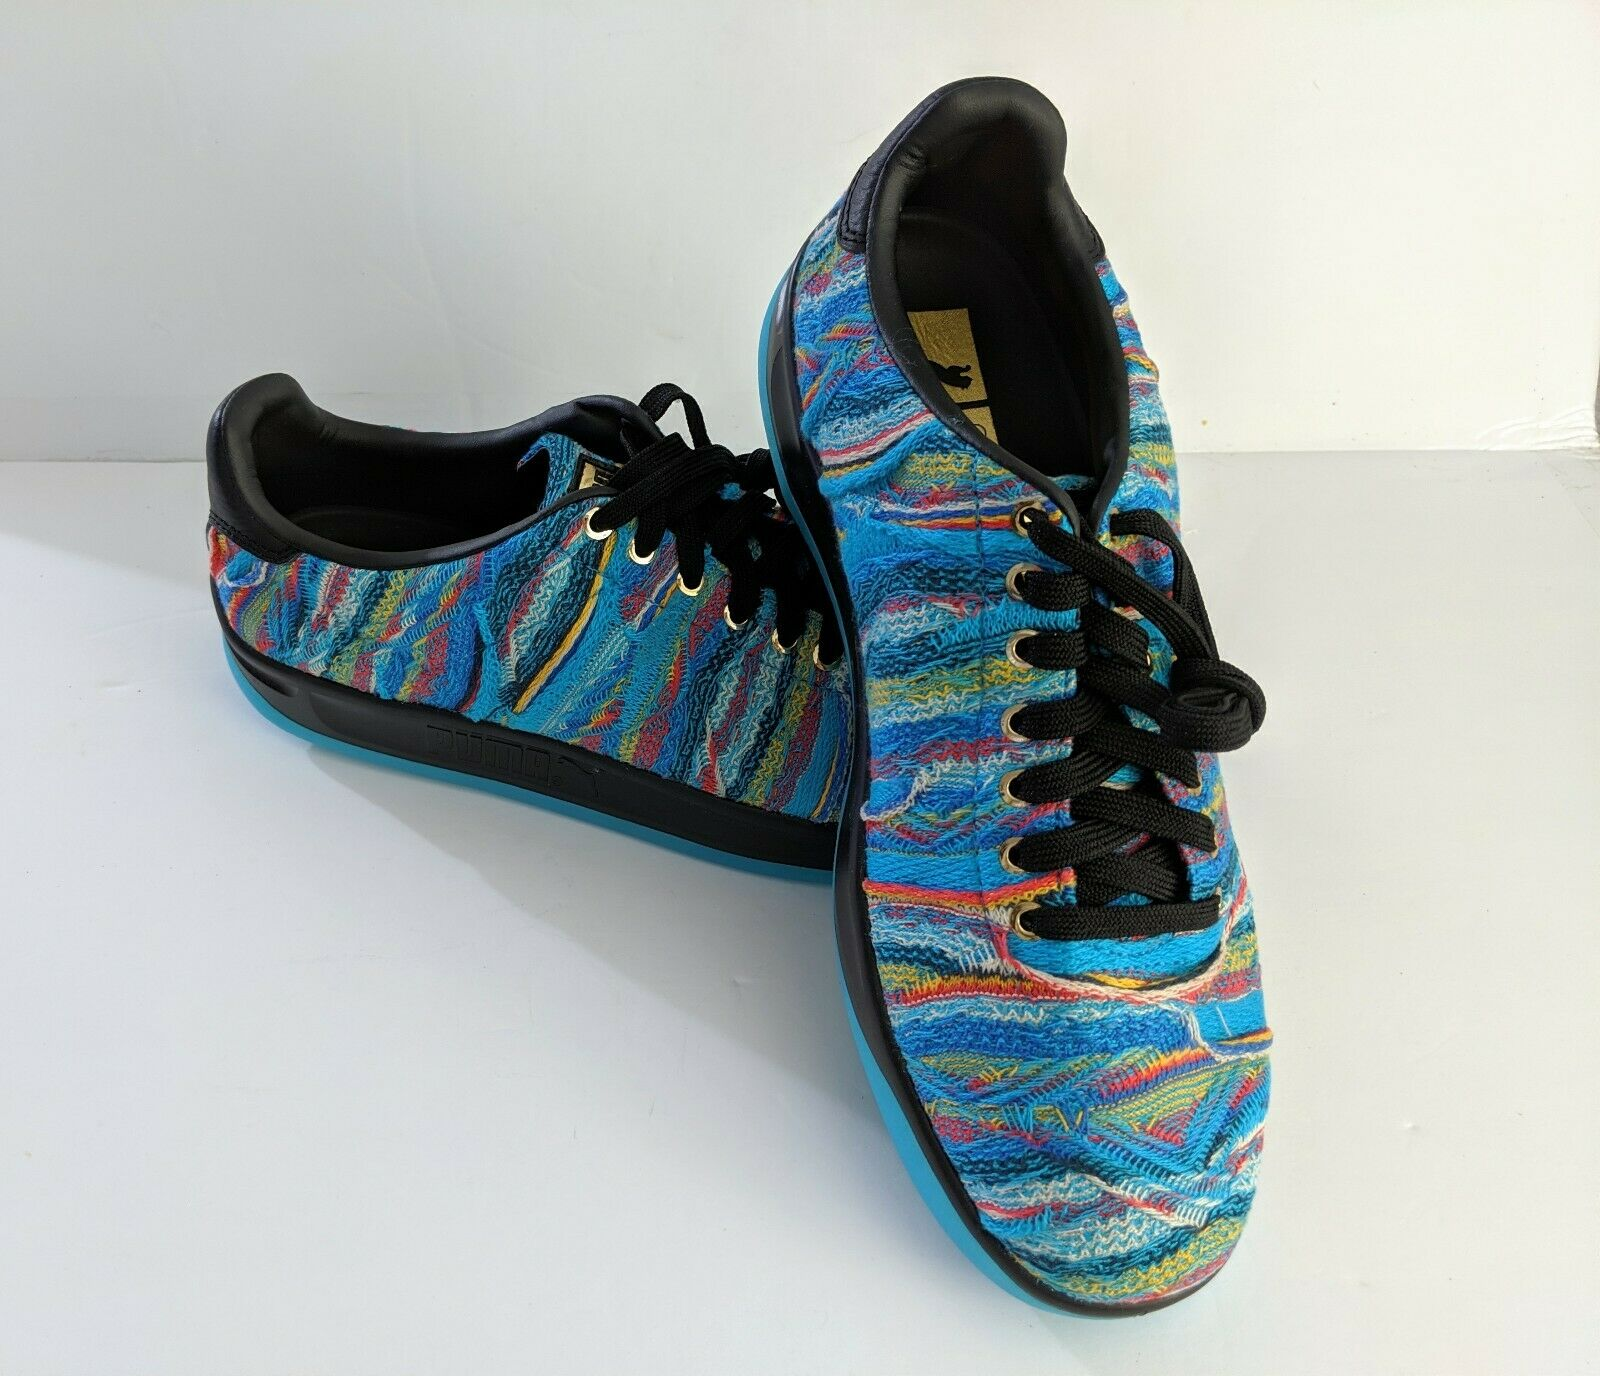 NEW Puma x Coogi California shoes bluee Atoll Black Men's Size 11 367973 01